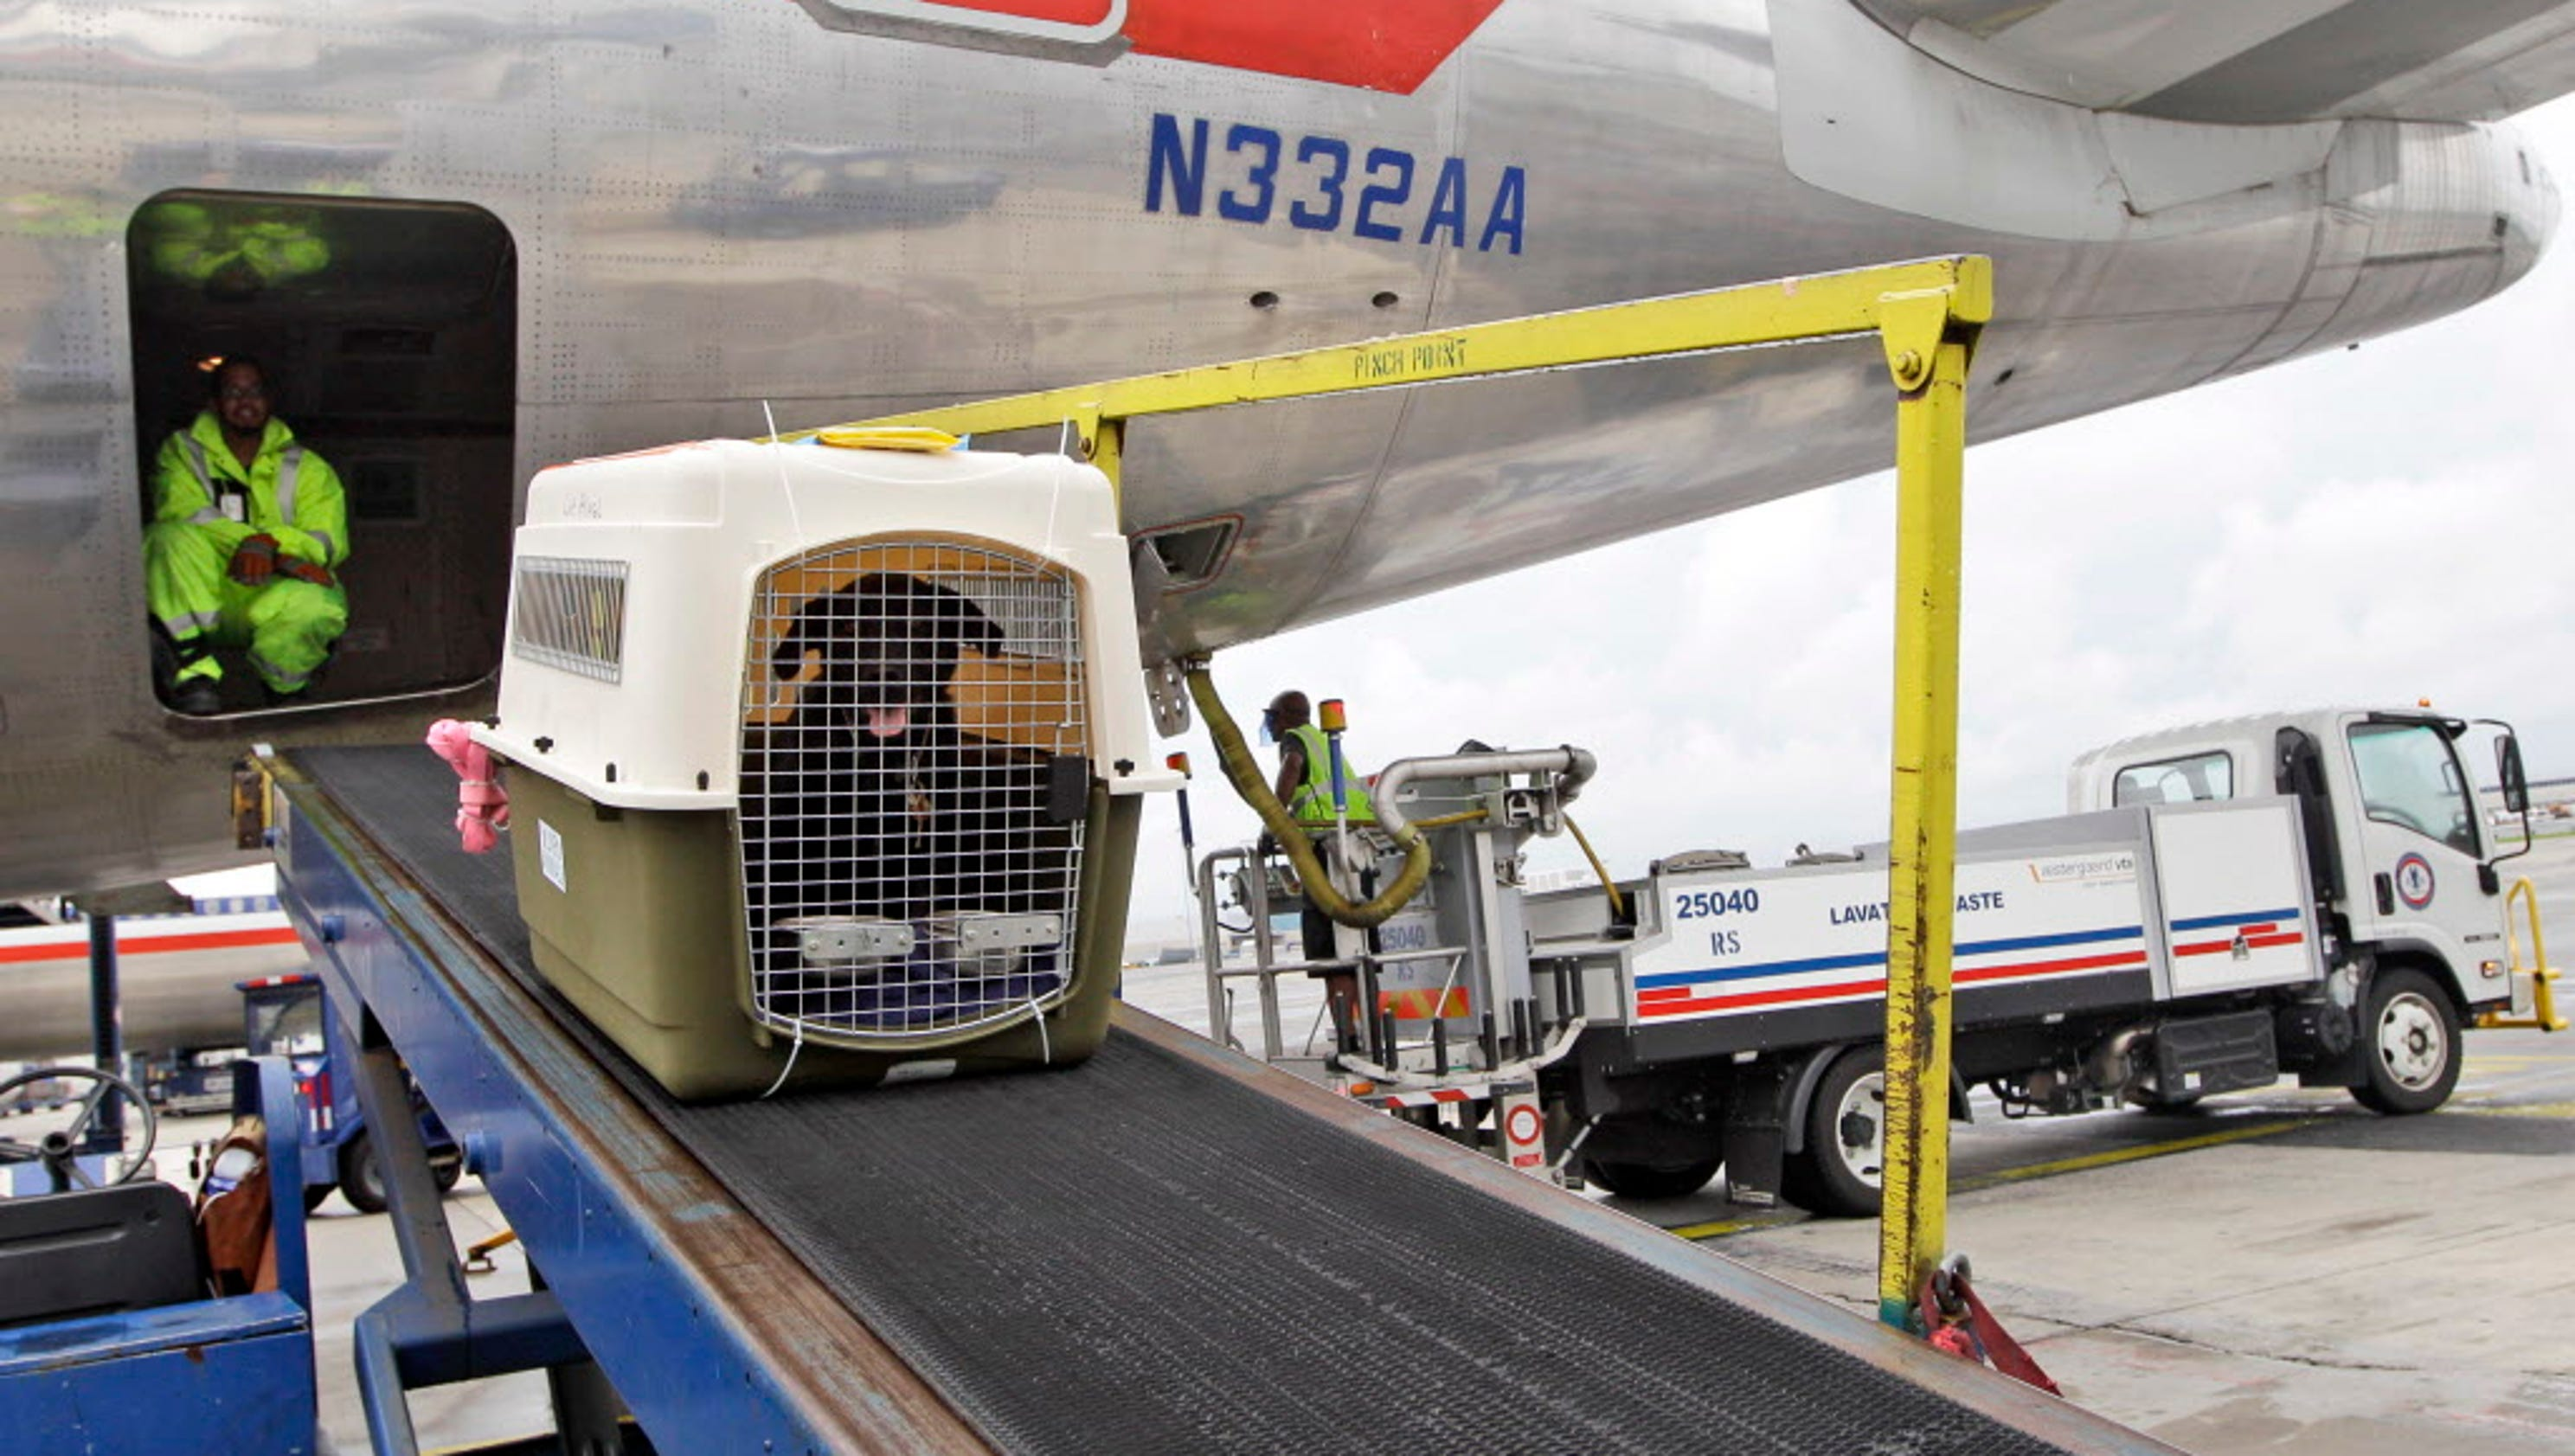 Alask Airline How To Get In With A Dog